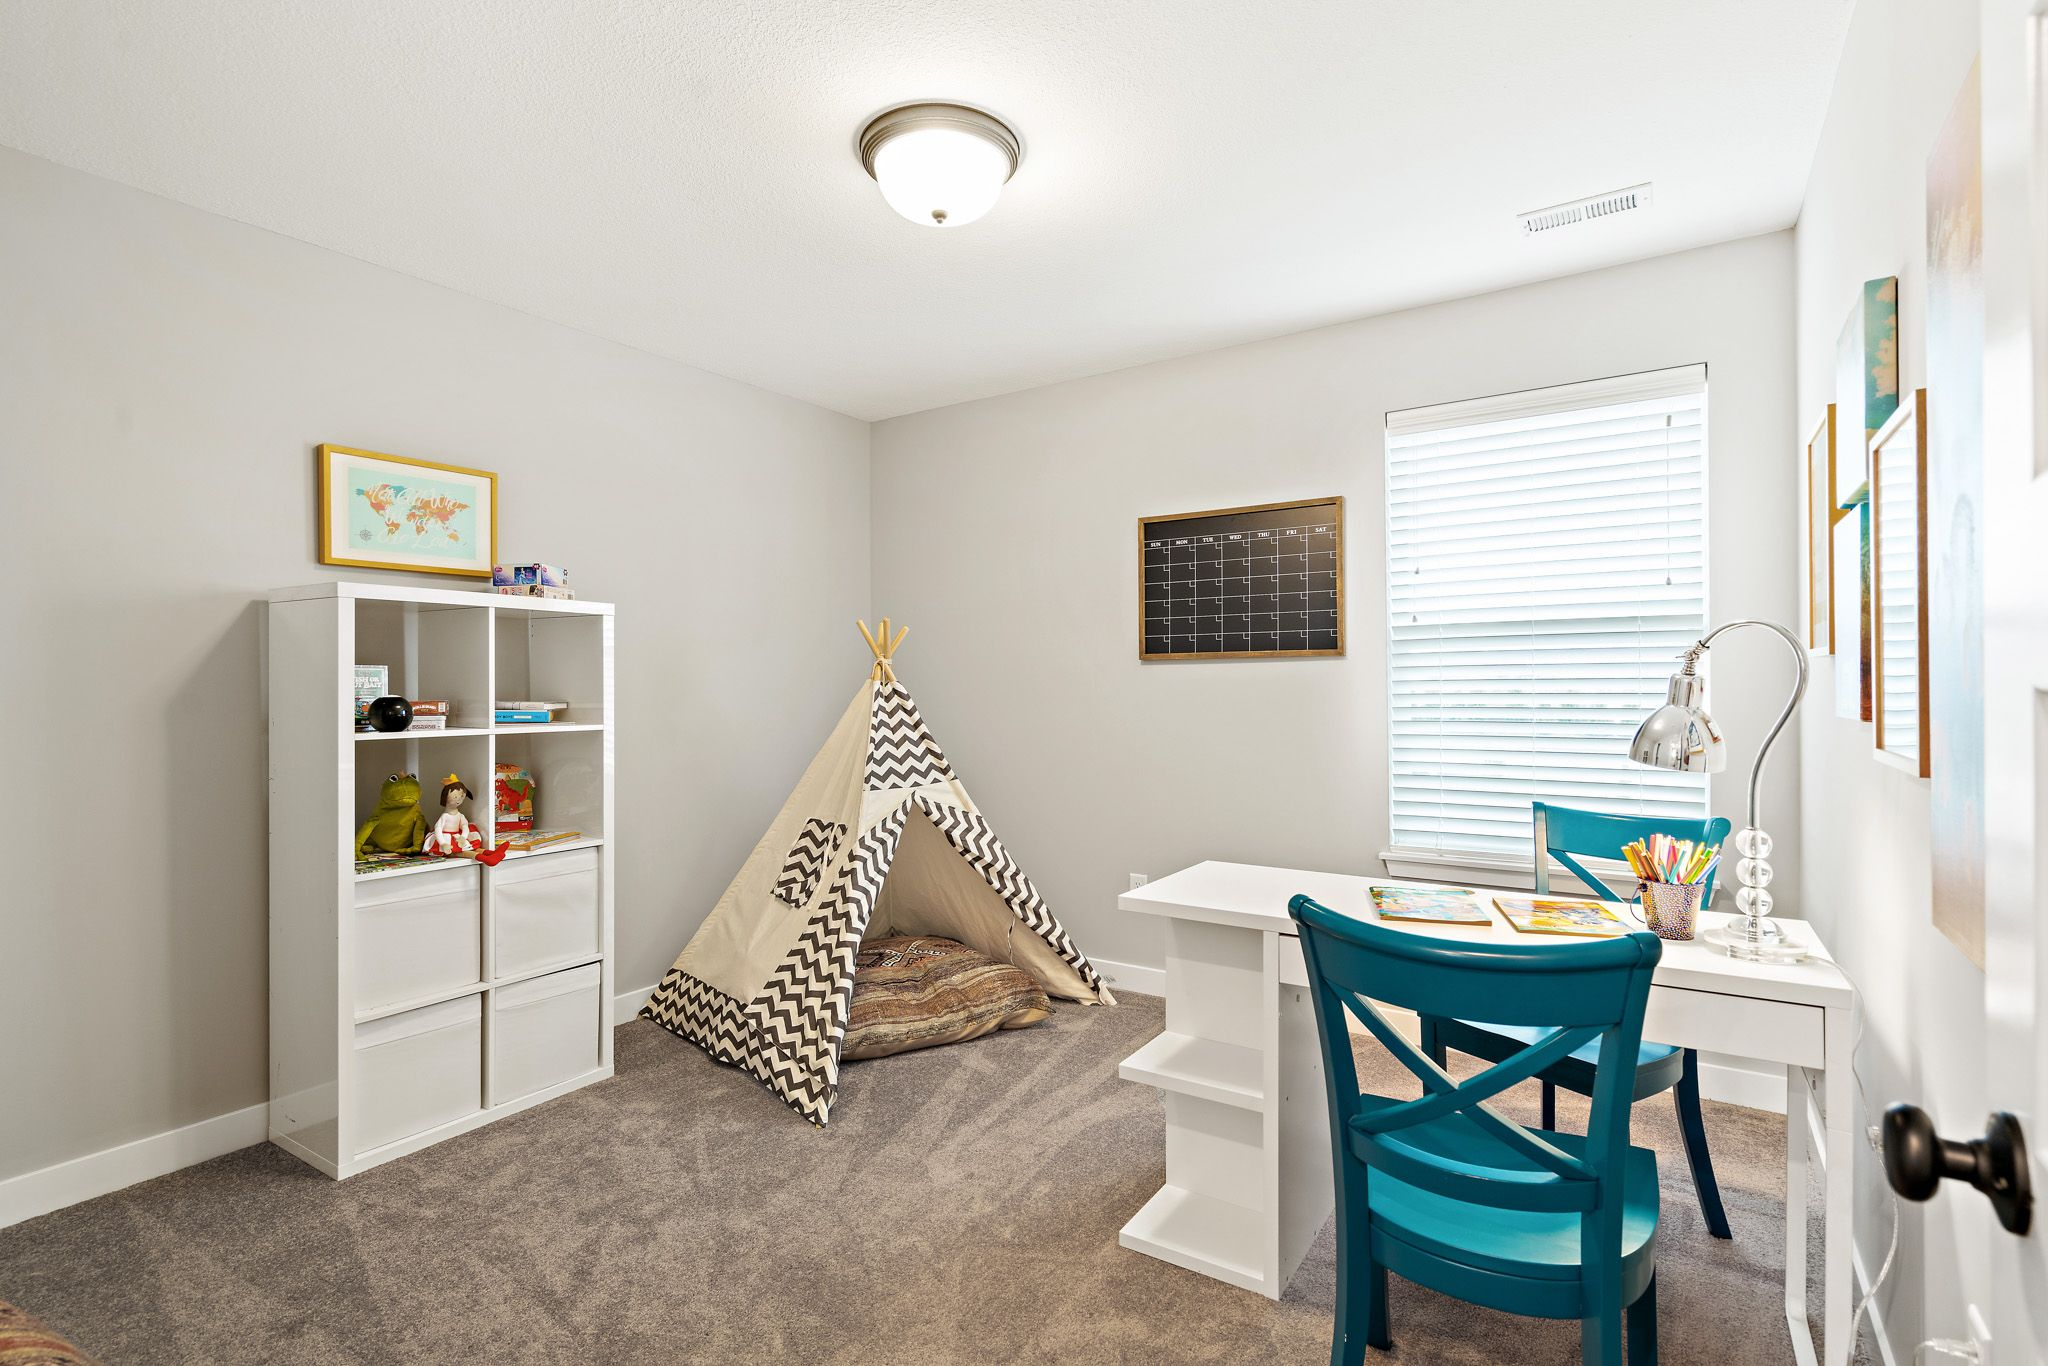 Living Area featured in the honeydew By clover & hive in Kansas City, MO